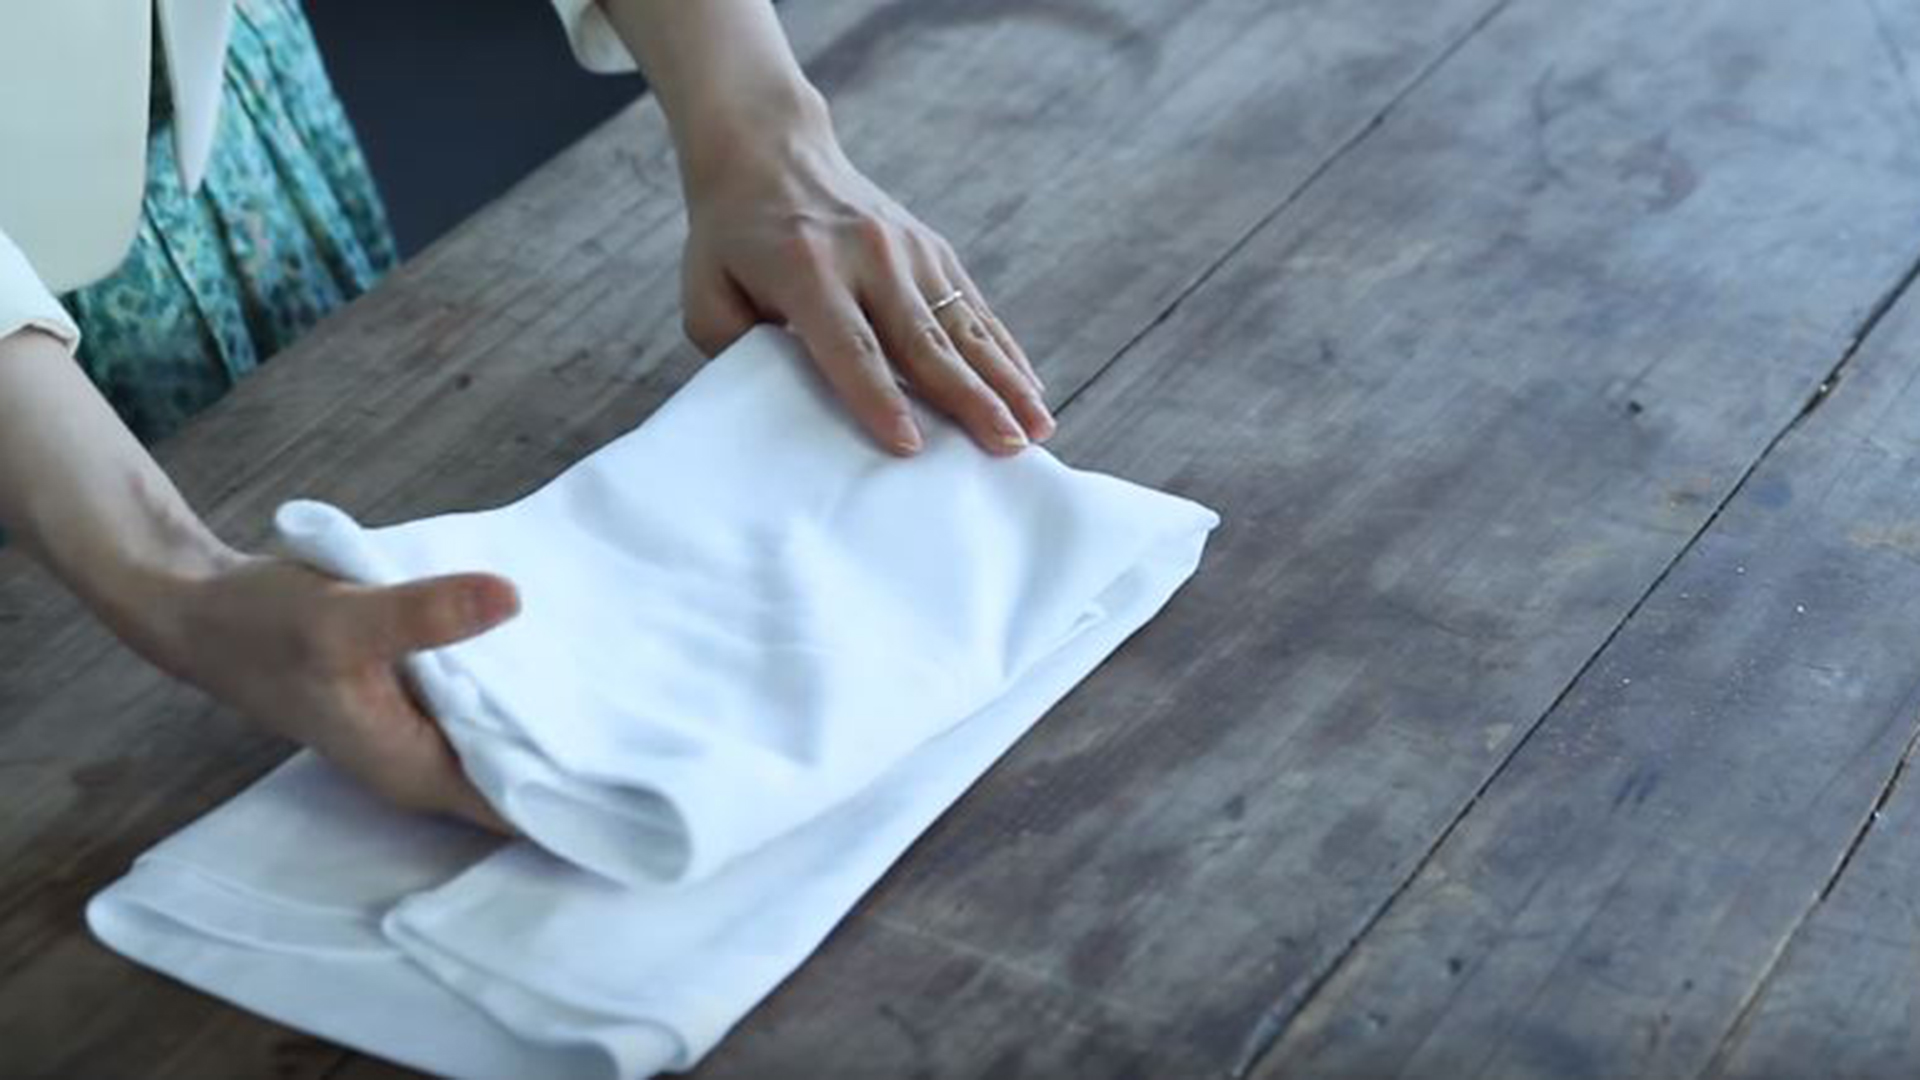 Marie Kondo Shows How To Properly Fold A Shirt Camisole